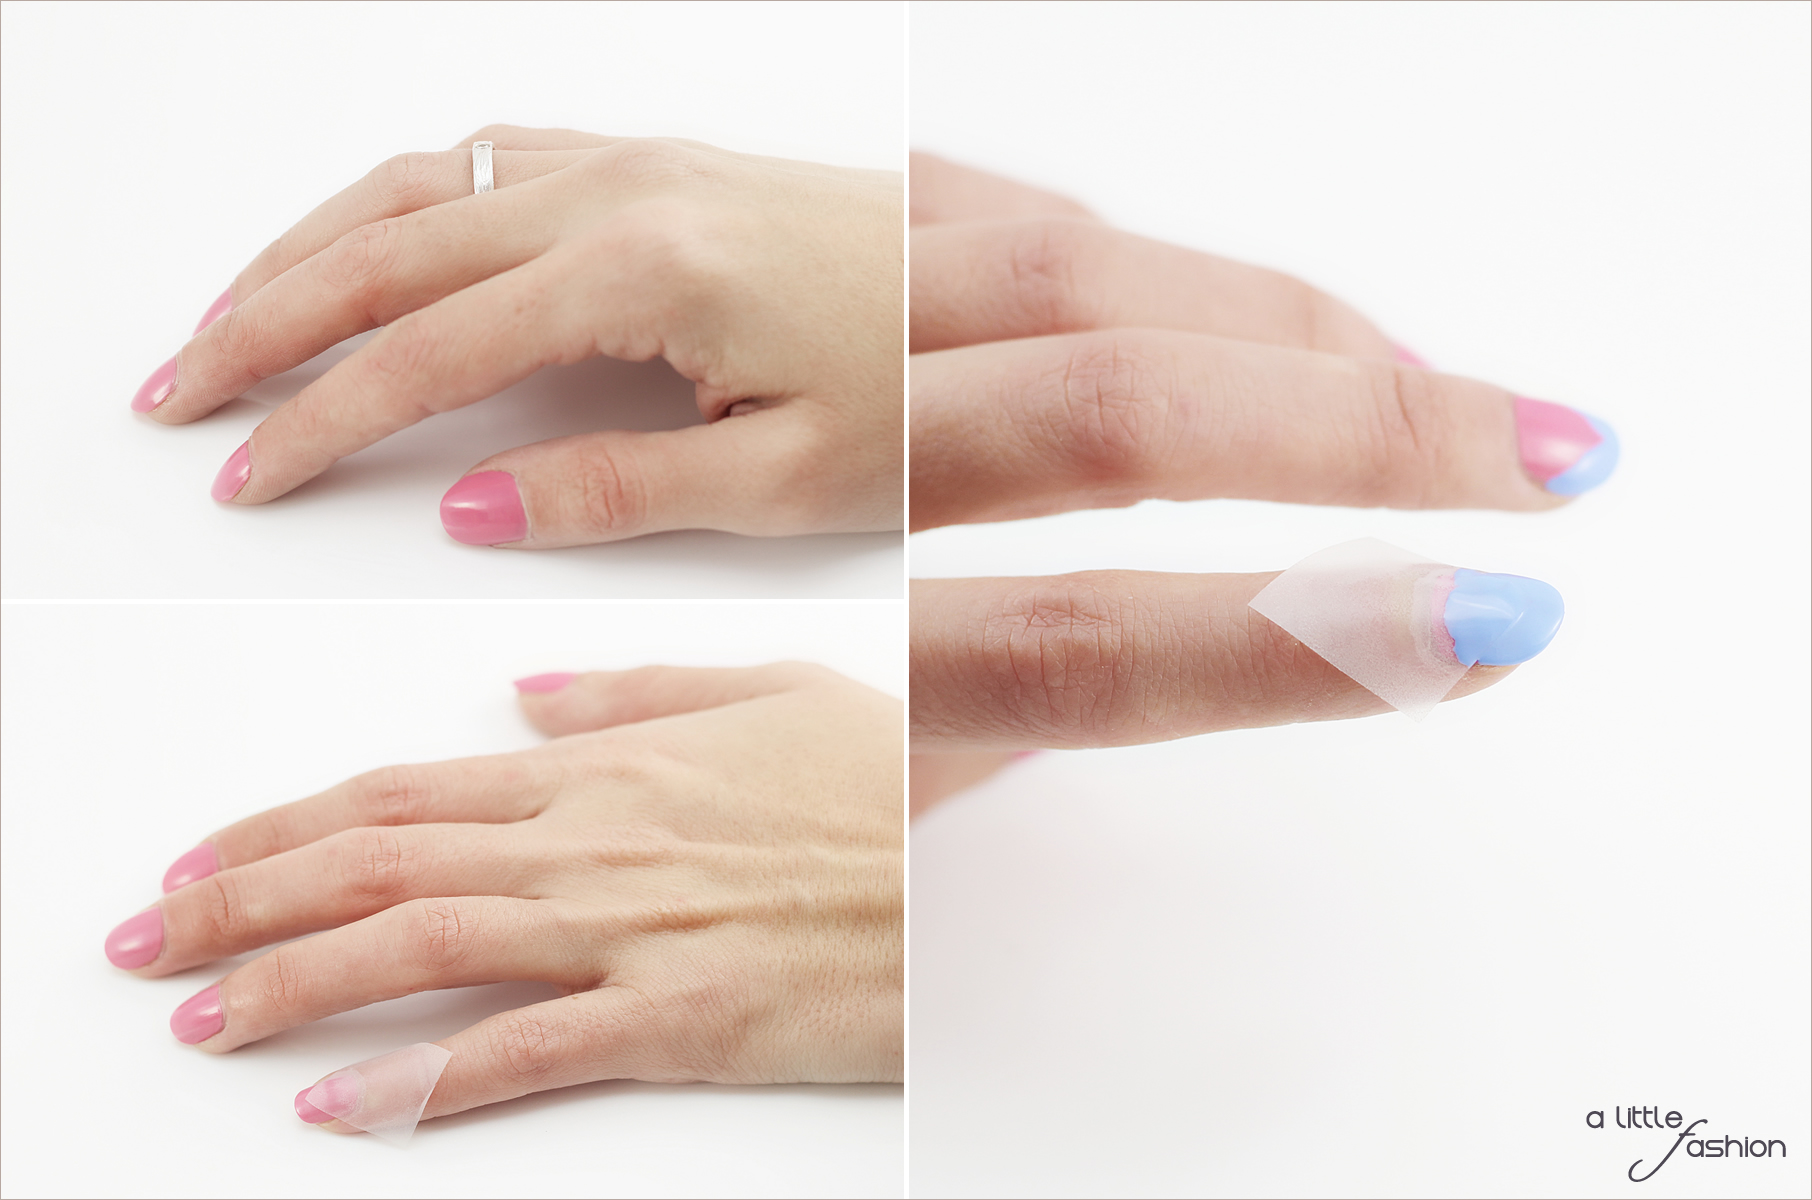 Frühlinghaftes Nageldesign mit Rose Quartz und Serenity  |  A Little Fashion  |  https://www.filizity.com/beauty/nageldesign-rose-quartz-serenity